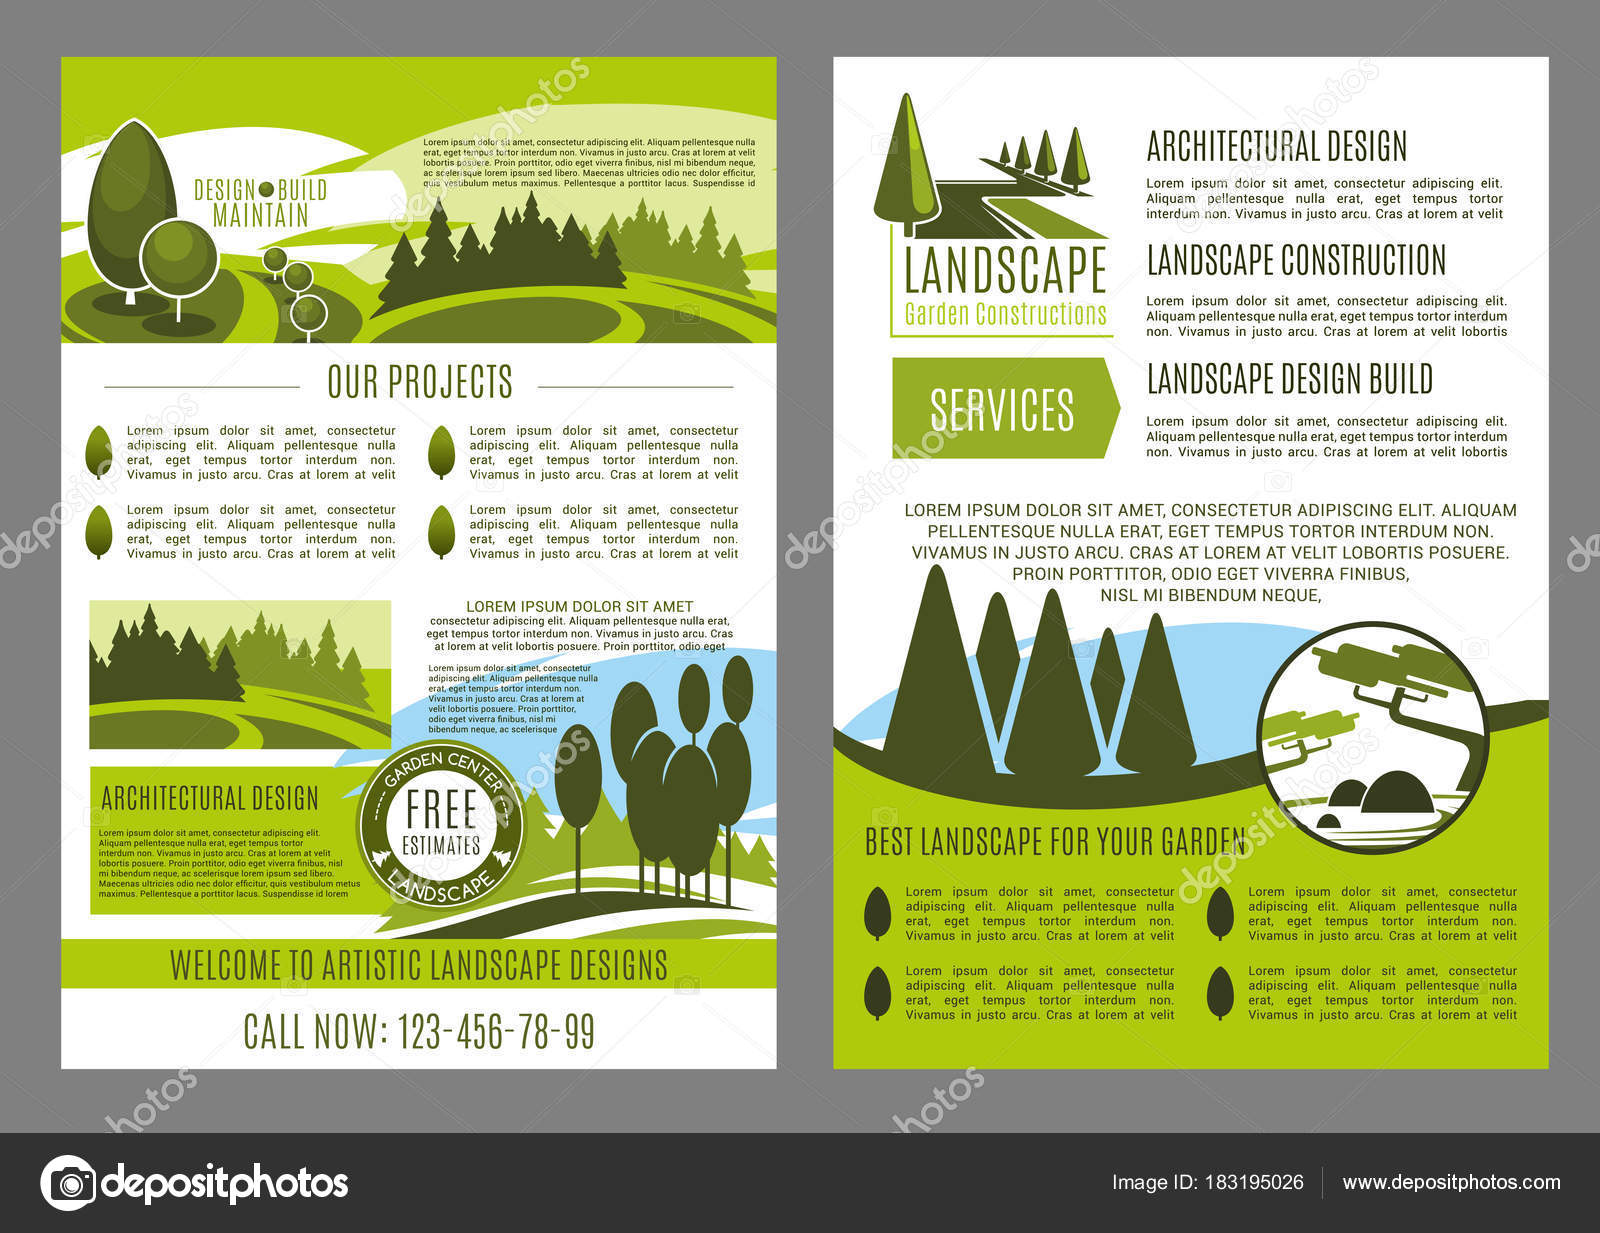 Landscape Design Company Business Brochure Template. Landscape  Architecture, Construction, Park Planning And Garden Design Promotion  Banner Or Leaflet With ...